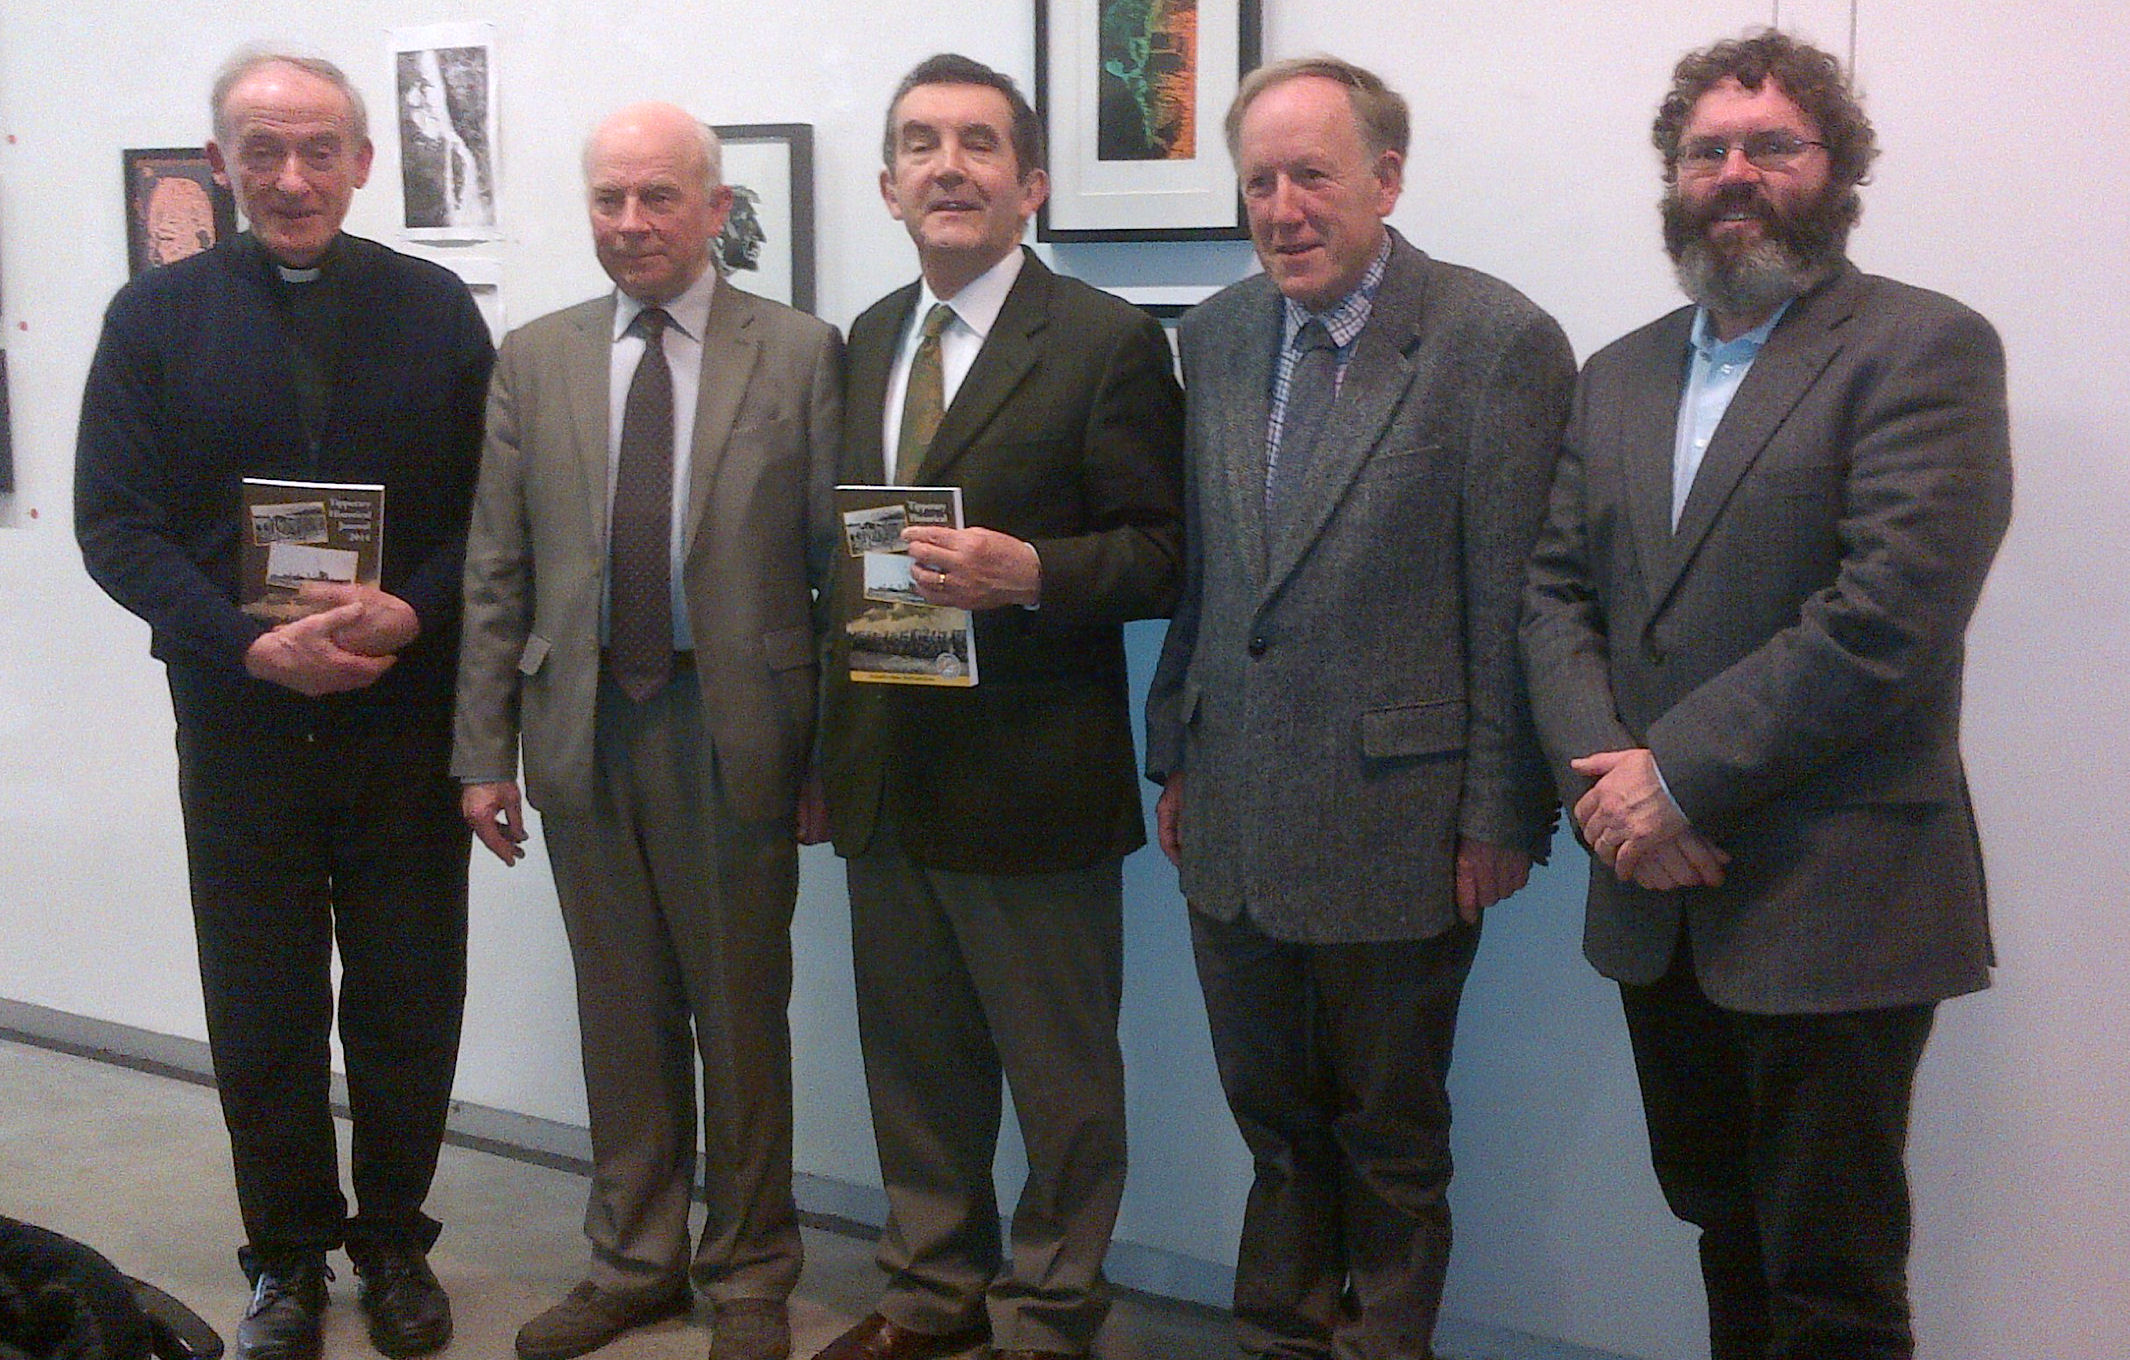 At The Launch Of The 2010 Tipperary Historical Journal: [from Left To Right] Donal O'Regan; Fr. Christy O'Dwyer; Richard O'Brien, Chair Of The County Tipperary Historical Society; Richard Clutterbuck; Mary Guinan-Darmody; Denis Marnane; Liam Irwin Of The History Department, Mary Immaculate College Of Education, Who Officially Launched The Journal; Danny Grace; Dónall Ó Fionnáin, Editor Of The 2010 Tipperary Historical Journal; Willie Nolan; Alice McDermott, History Department, Waterford Institute Of Technology, Contributor To The Journal And Liam Ó Duibhir. [Thanks To Carmel O'Donnell For The Photo!]